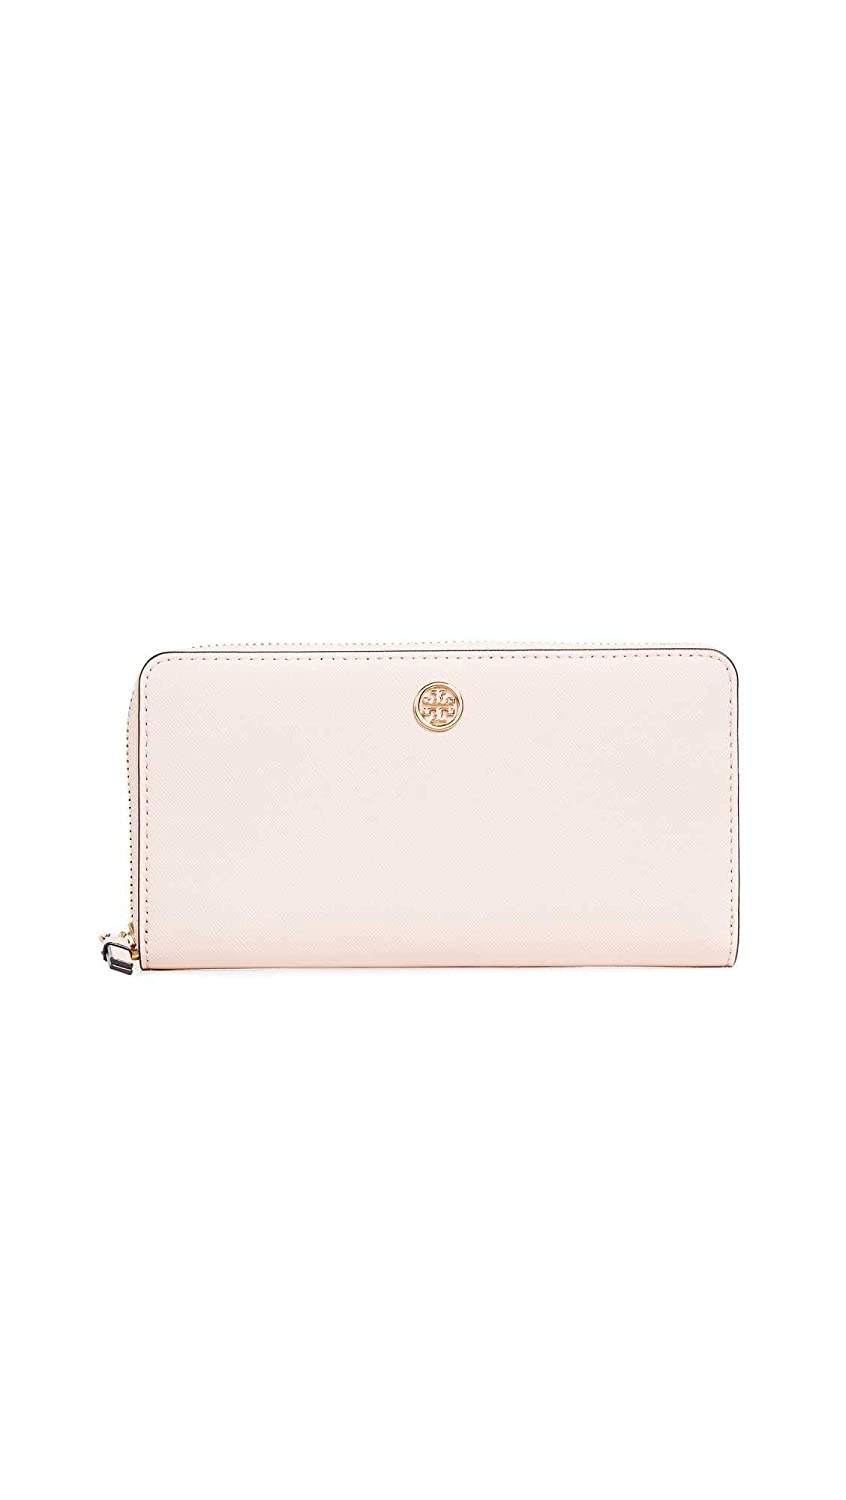 15ae945c1c5 Amazon.com: Tory Burch Women's Robinson Zip Continental Wallet, Pale  Apricot/Royal Navy, Pink, One Size: Shoes